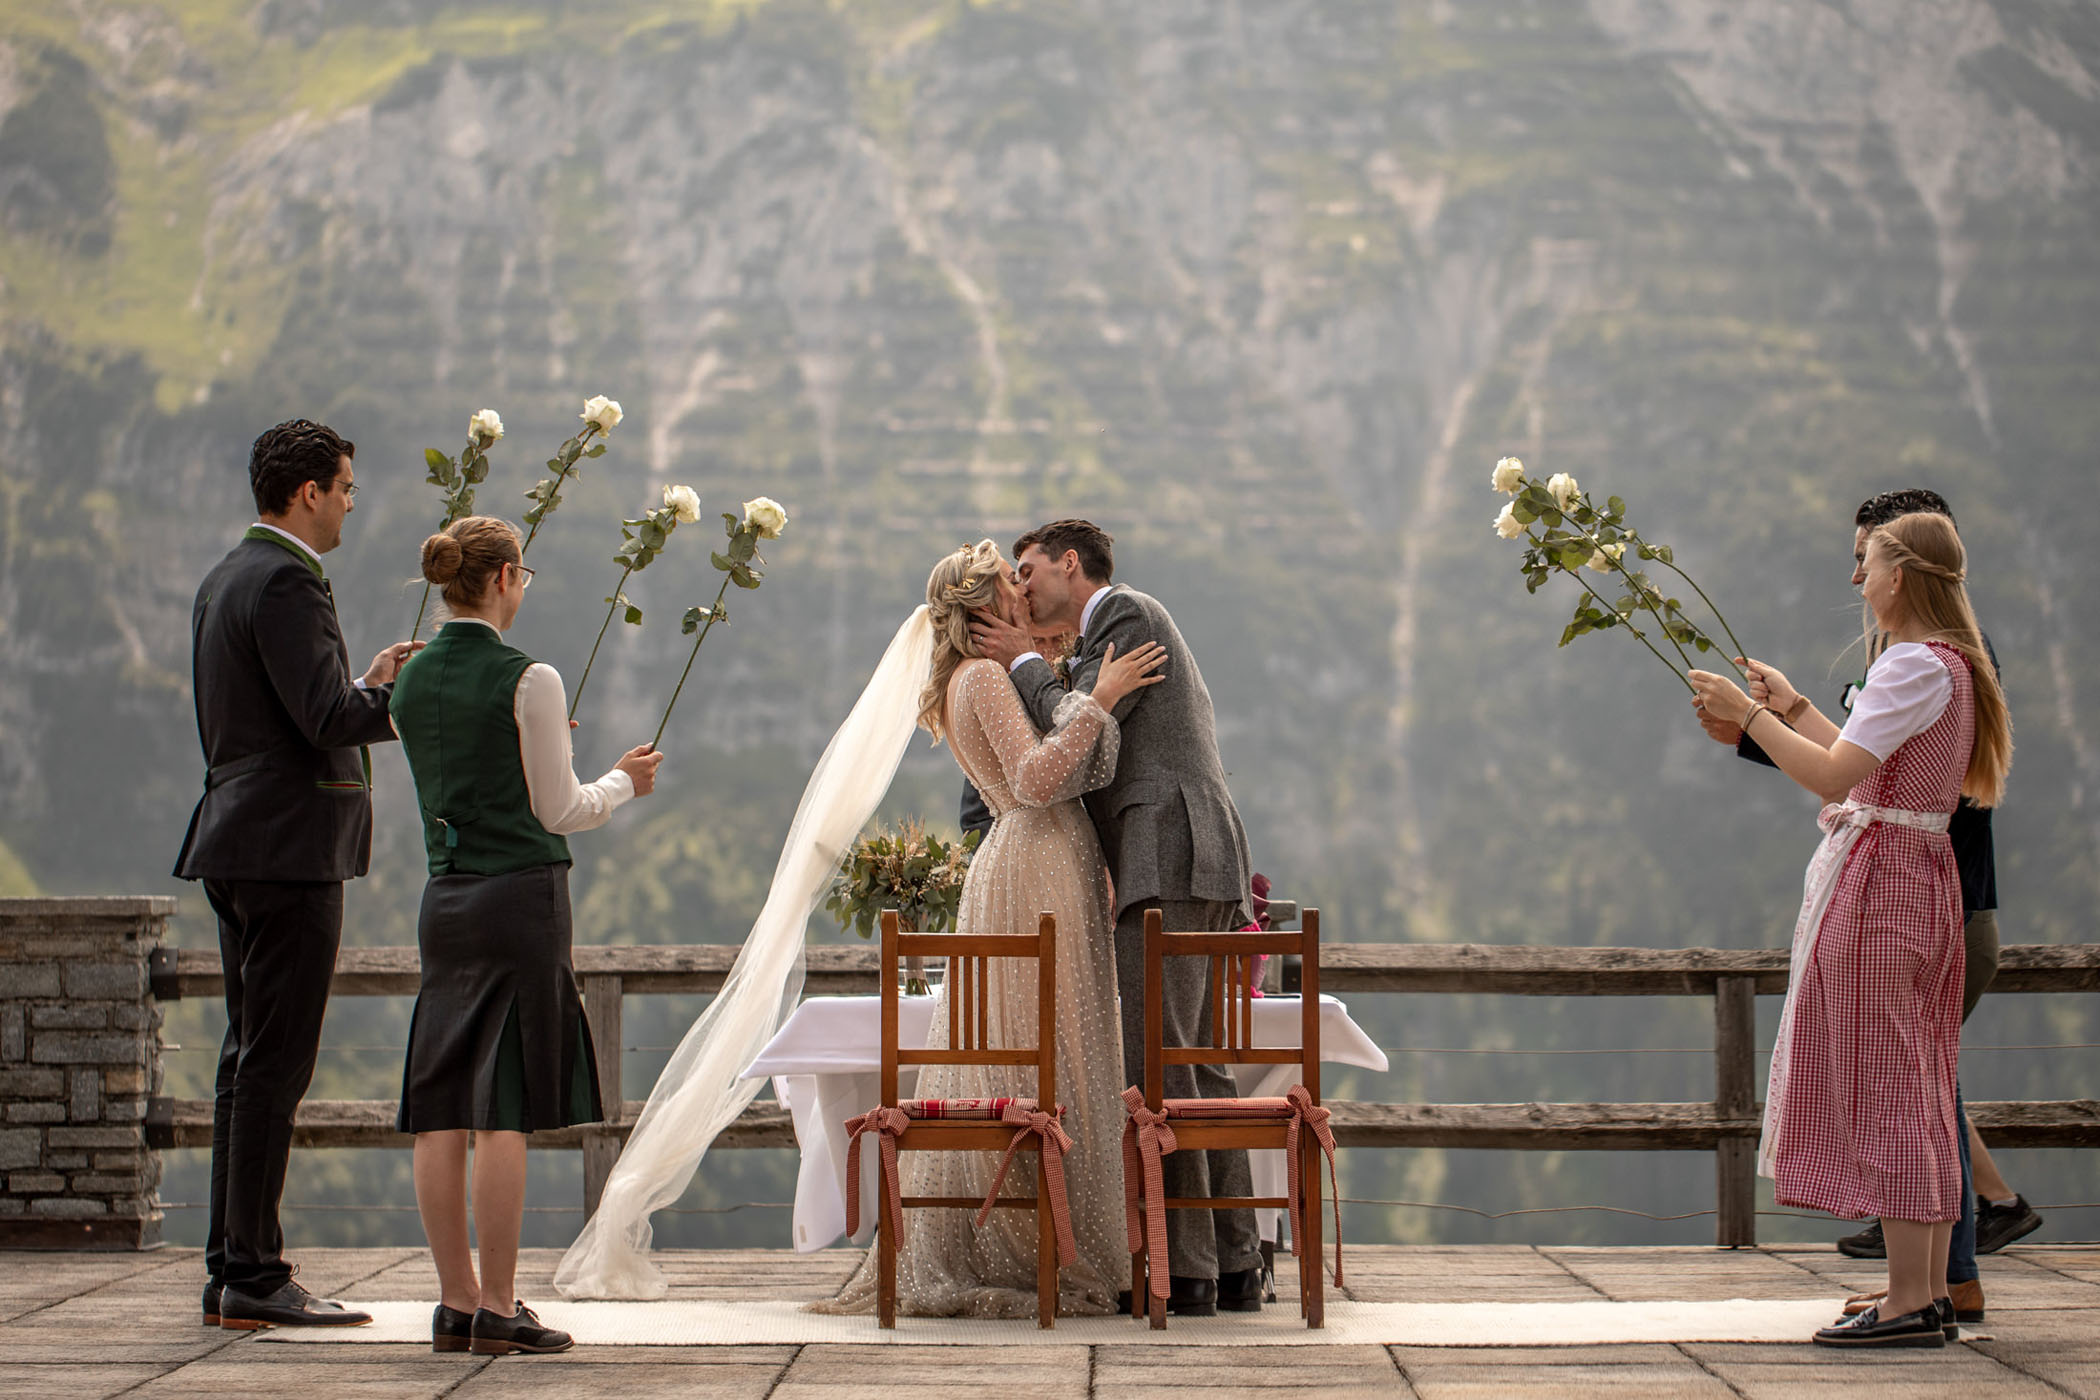 Husband and wife share first kiss during their elopement in Austria